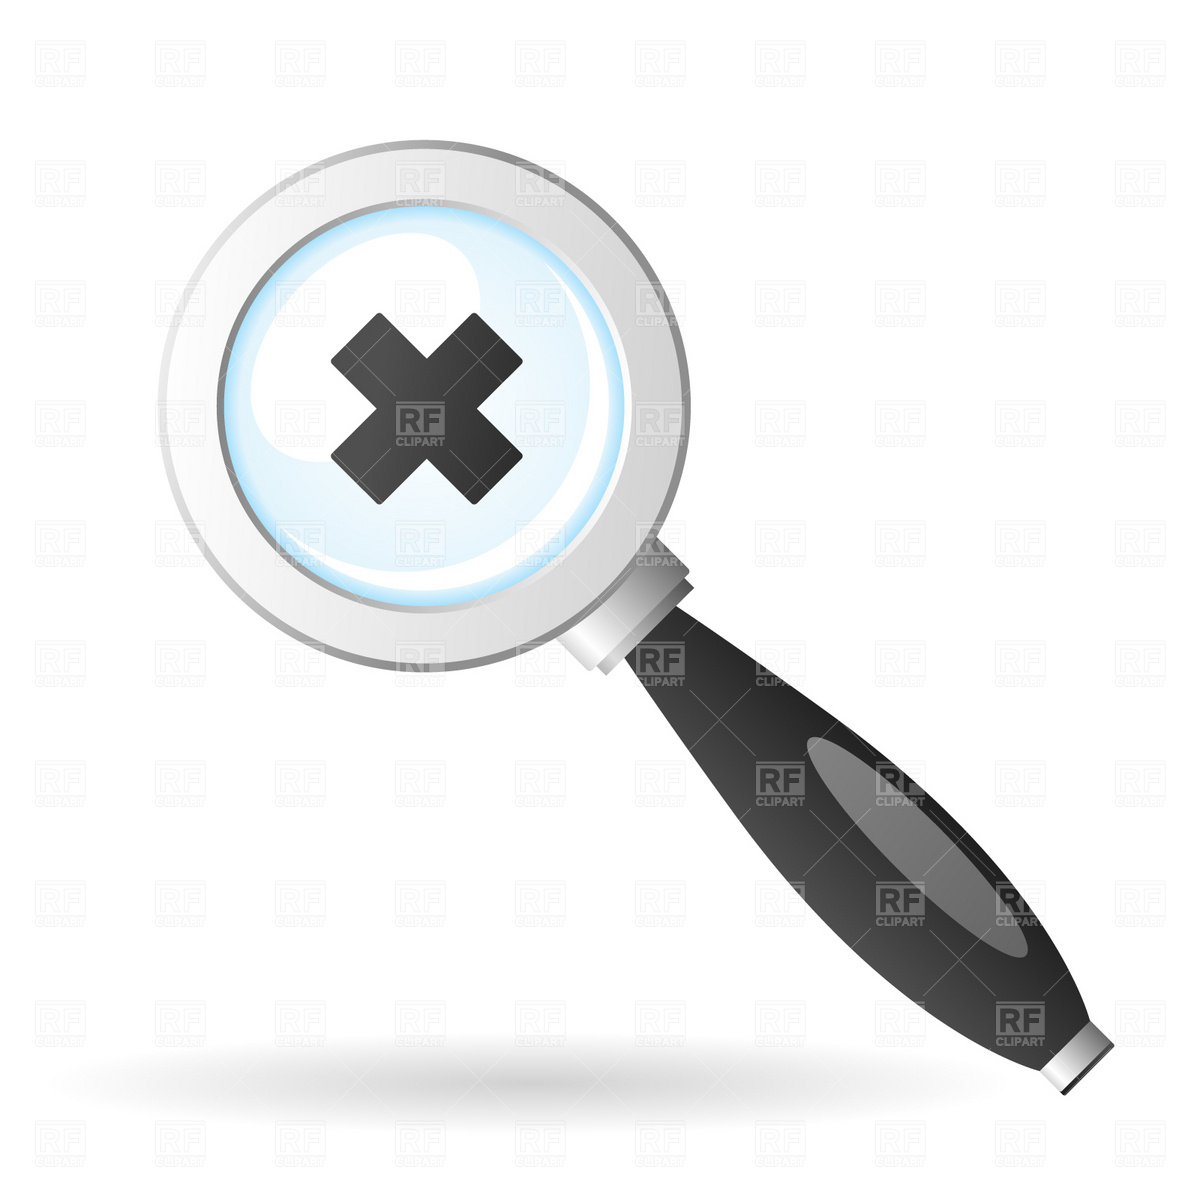 Magnifying glass icon Vector Image #1685.